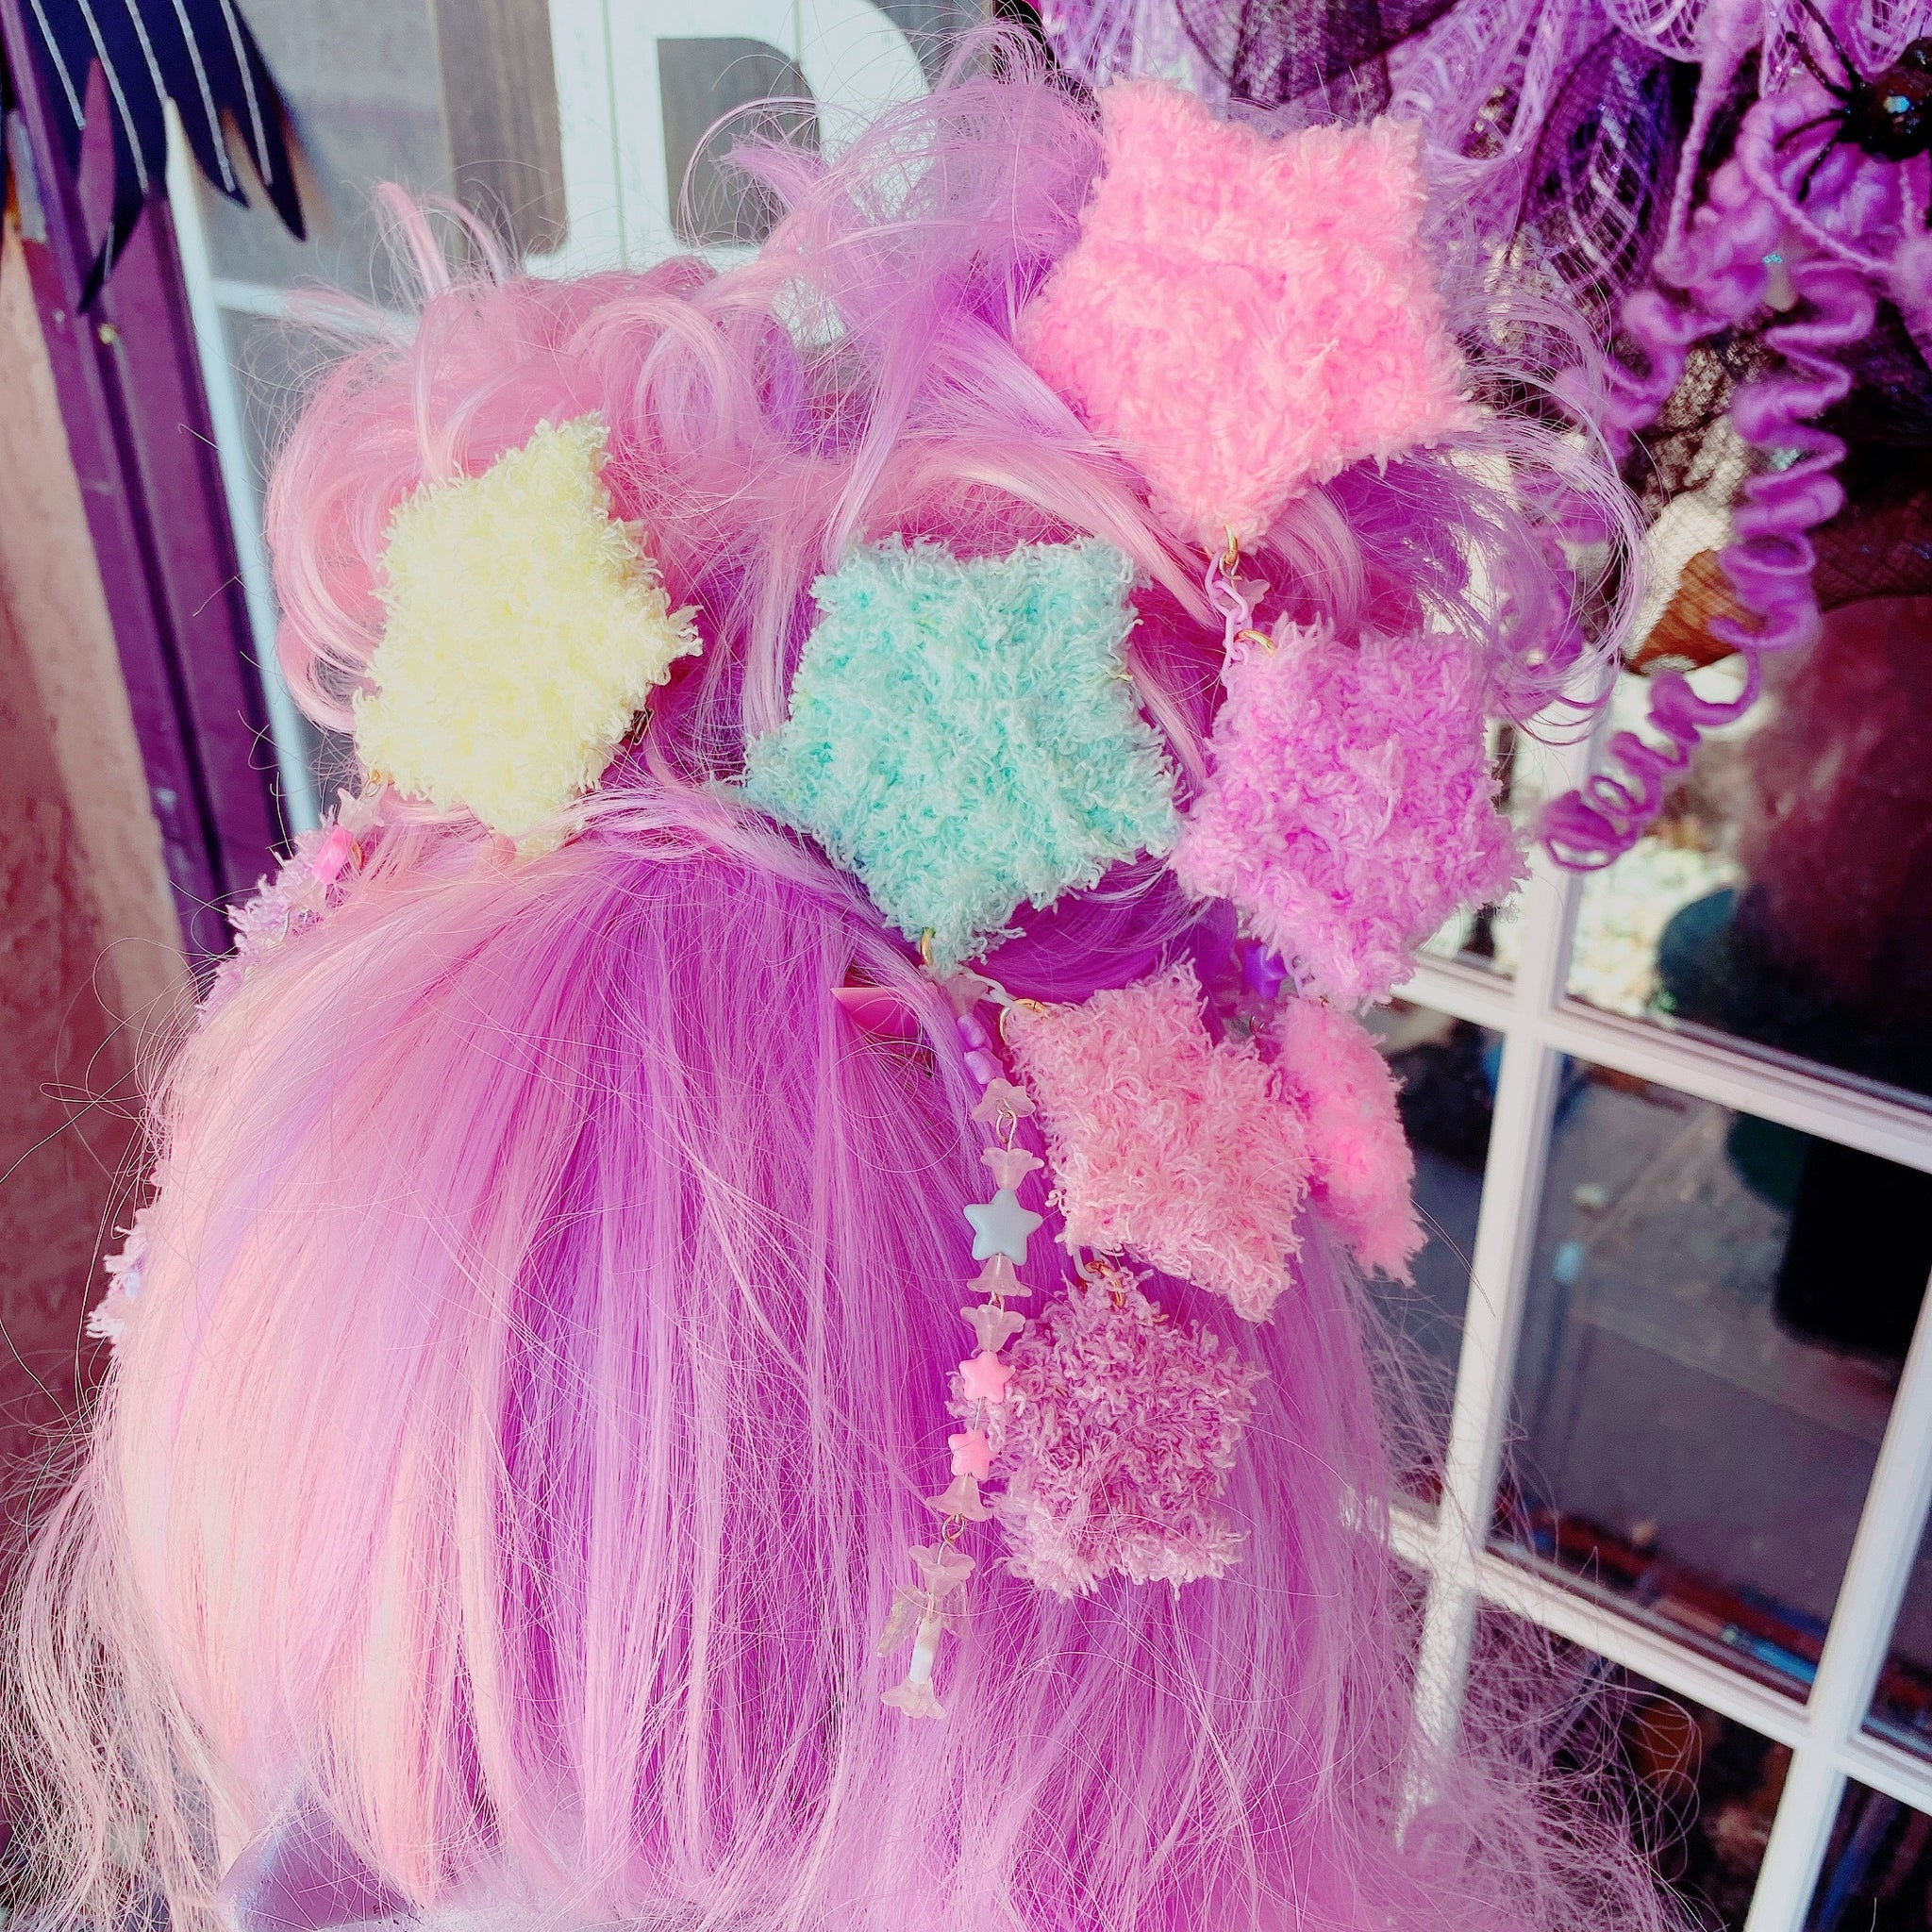 Blue Fuzzy Star 2 Way Dangle Hair Clip Chocomint Inspired Pastel Fairy Kei Sweet Lolita Kawaii Stars